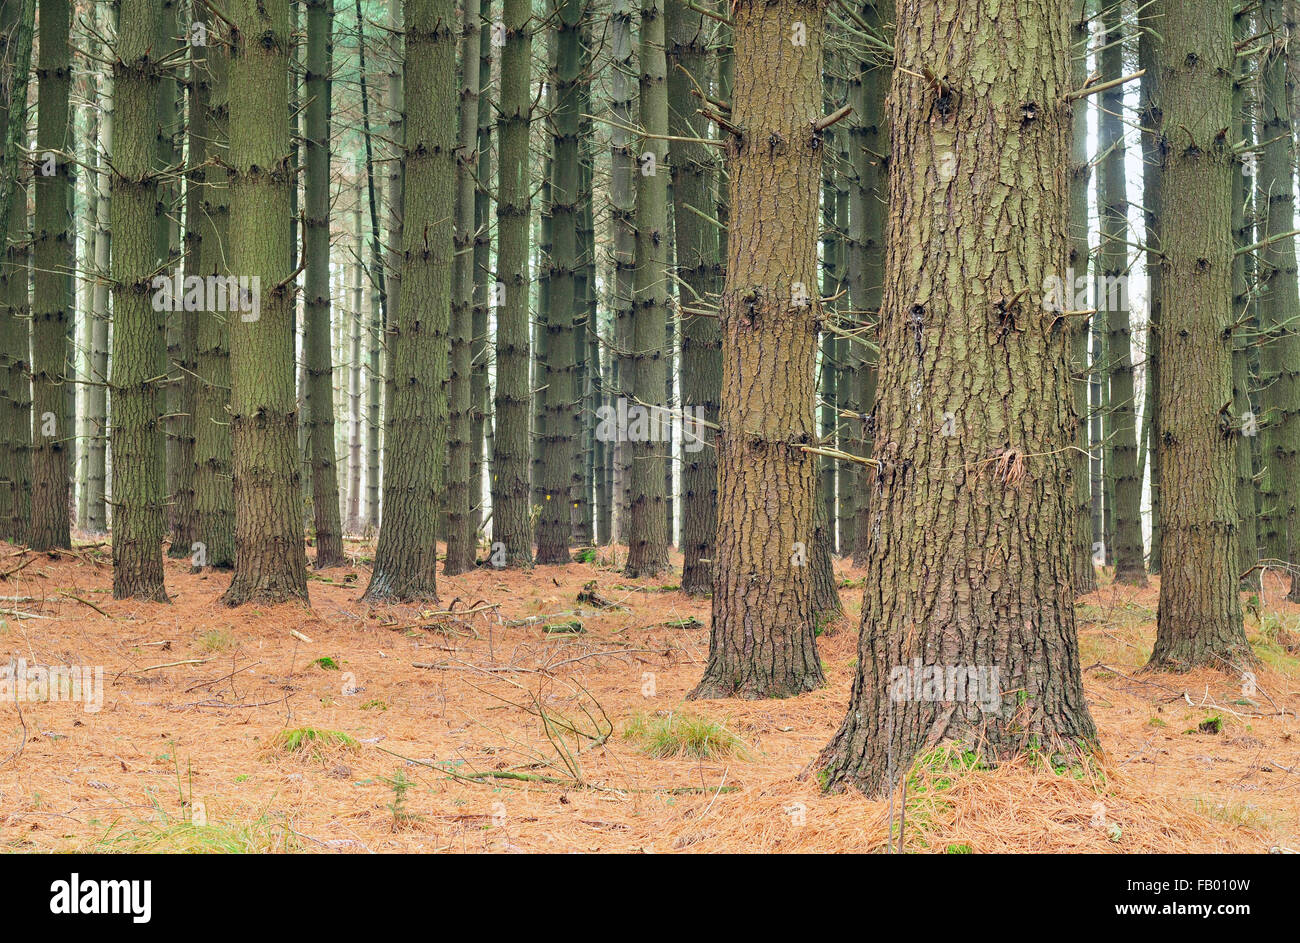 Photo of a beautiful pine tree forest - Stock Image